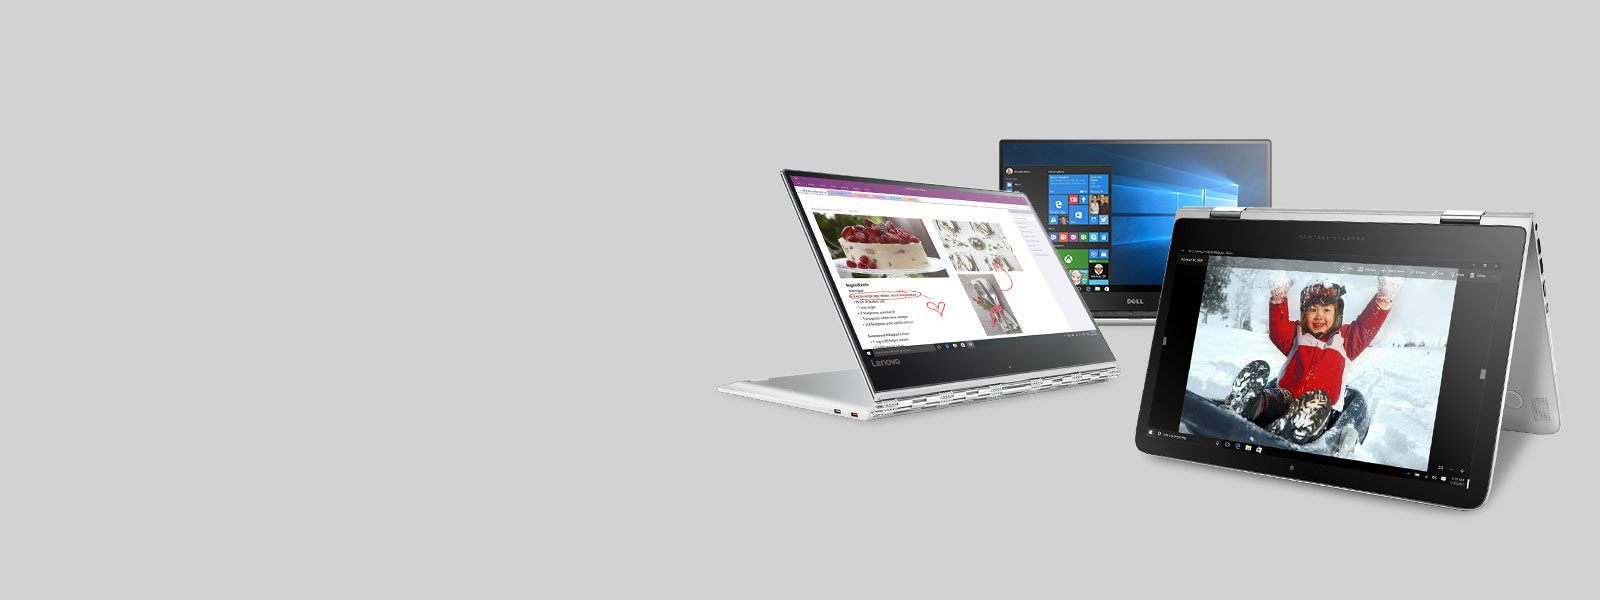 A Lenovo Yoga 910 laptop, an HP Spectre x360 laptop, and a Dell XPS 13 laptop